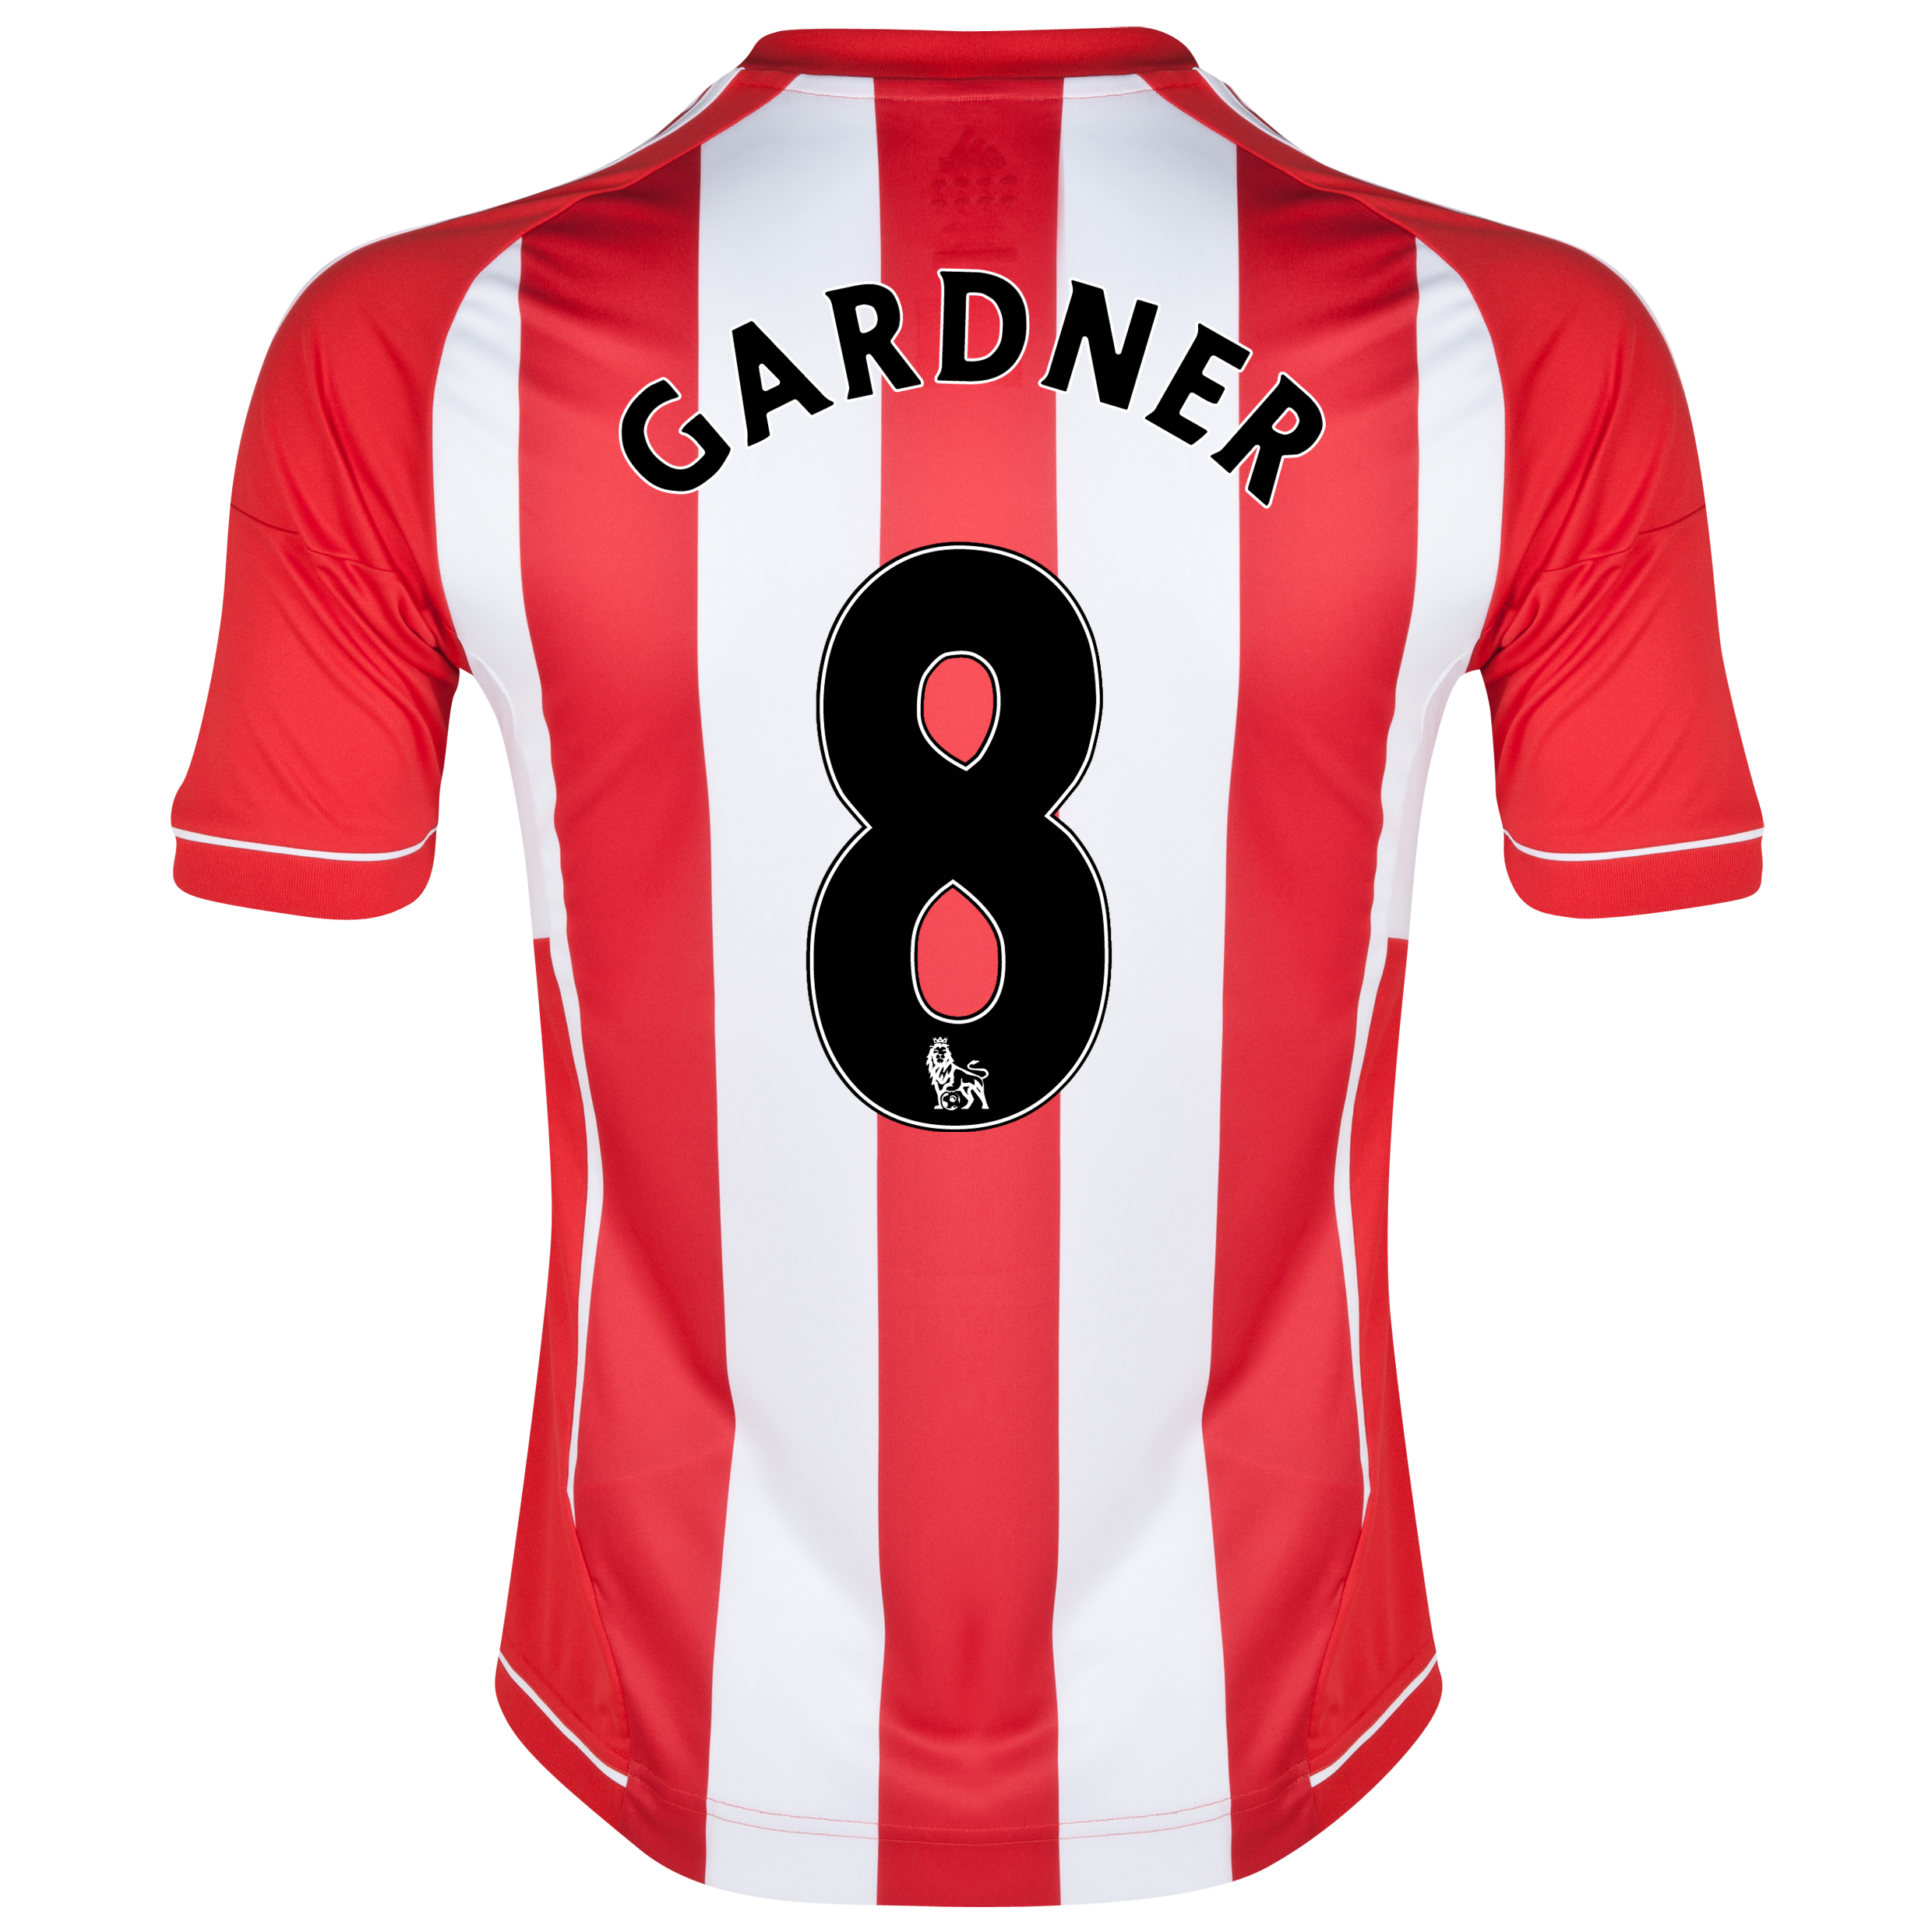 Sunderland Home Shirt 2012/13 with Gardner 8 printing